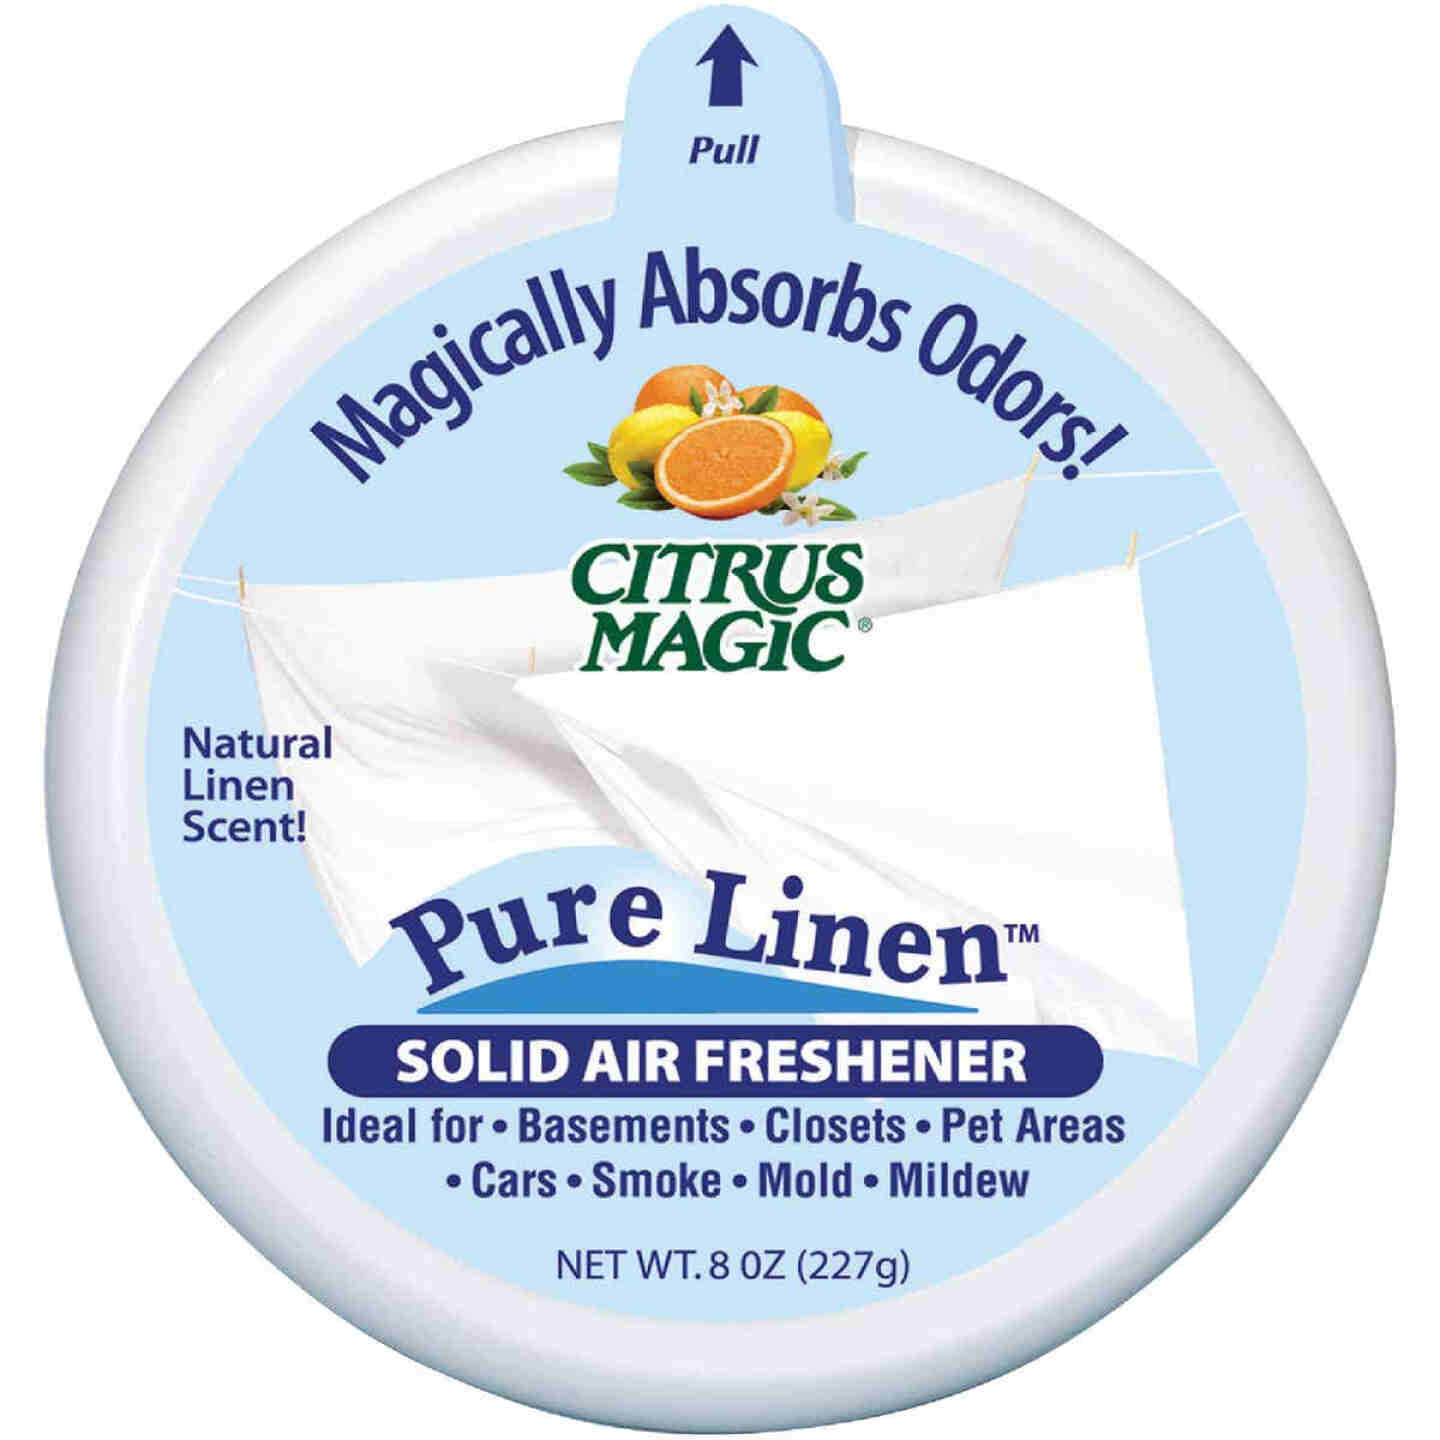 Citrus Magic 8 Oz. Pure Linen Solid Air Freshener Image 1